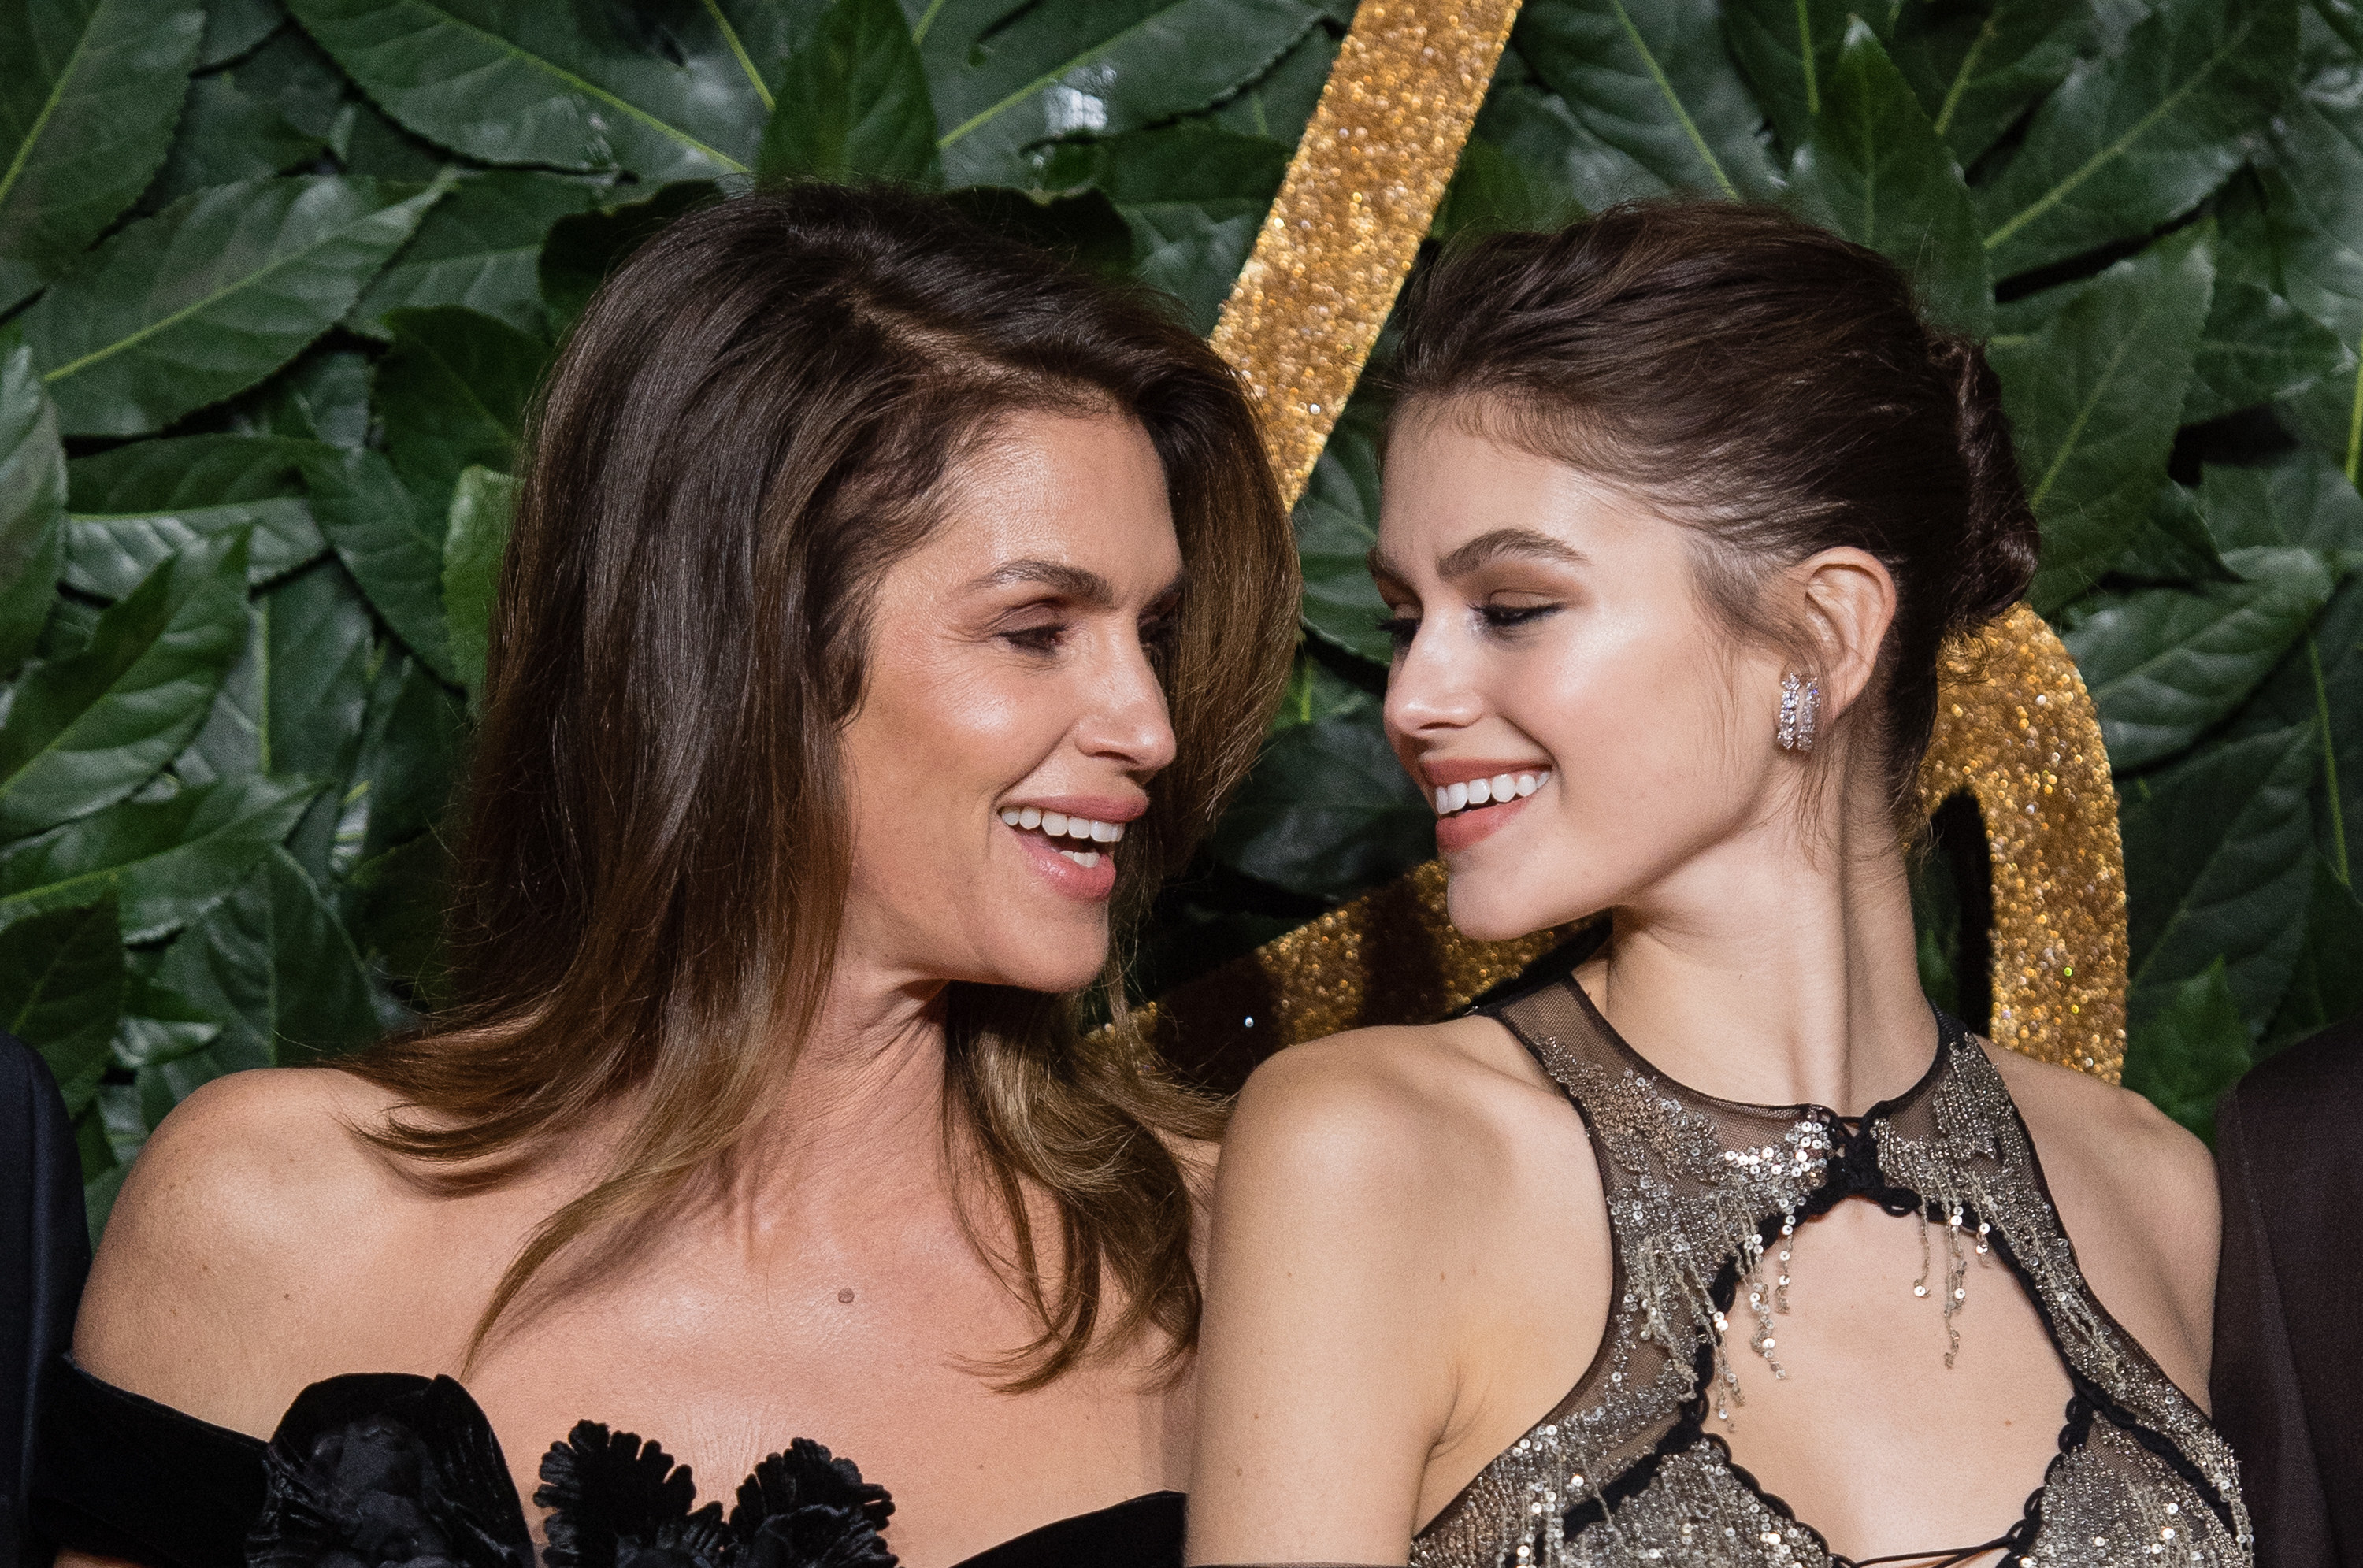 Cindy Crawford and Kaia Gerber in fancy dresses at a red carpet event